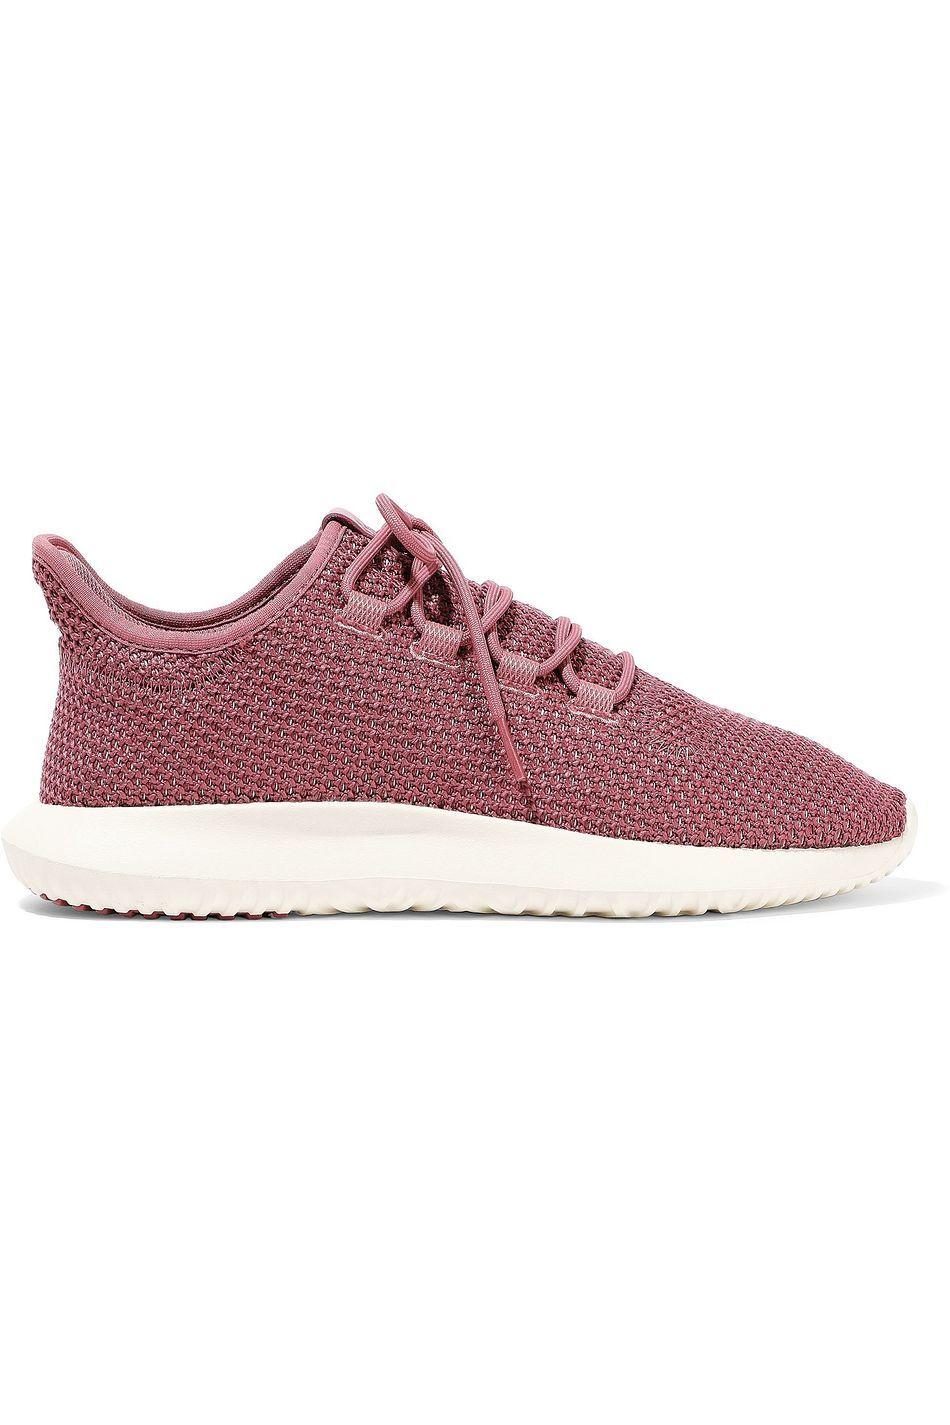 Shop on-sale Tubular Shadow knitted sneakers. Browse other discount designer Sport Sneakers & more luxury fashion pieces at THE OUTNET